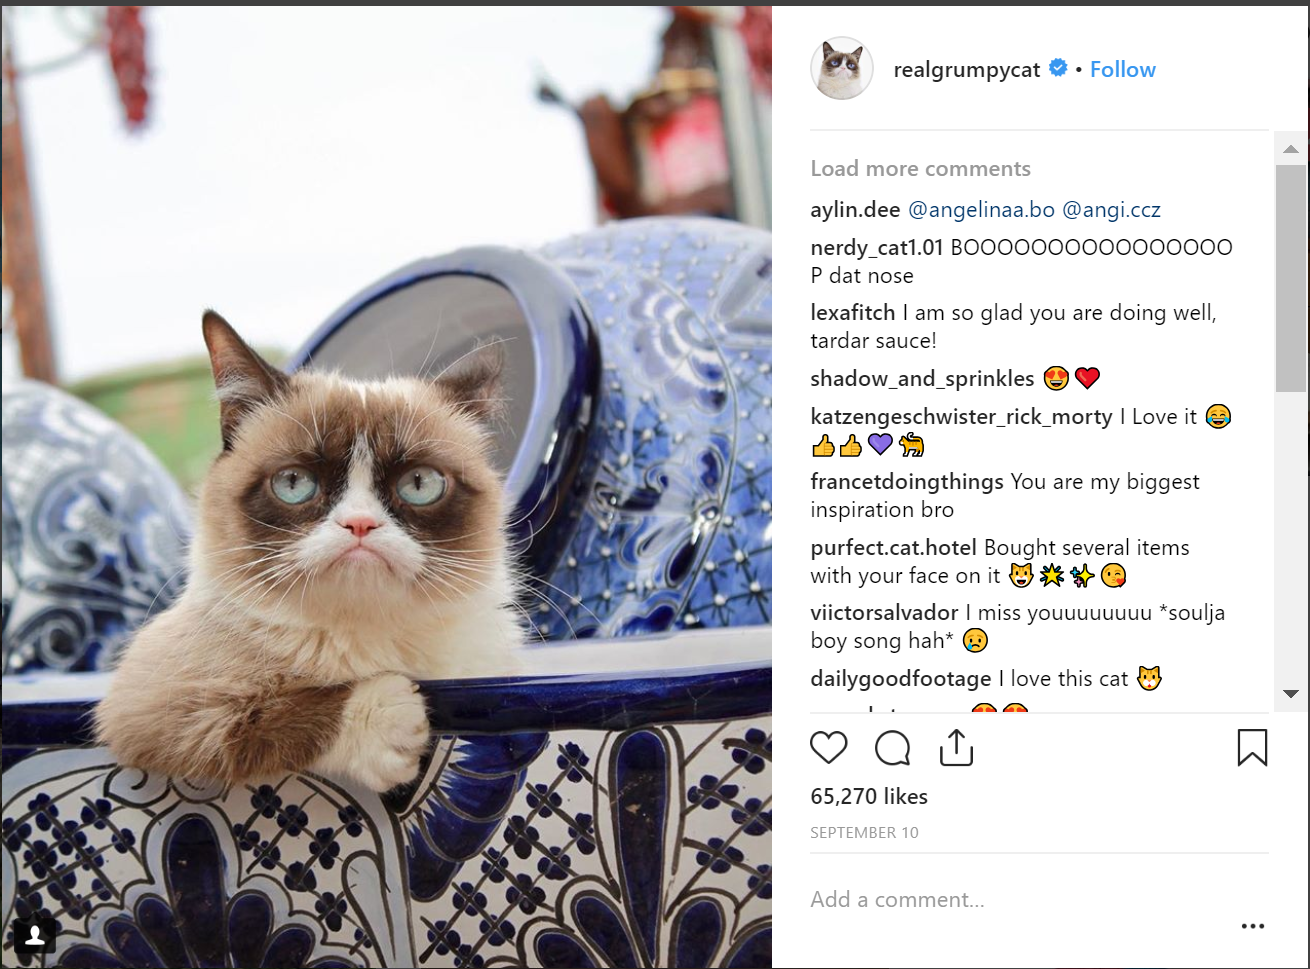 The real grumpy cat is a top instagram account